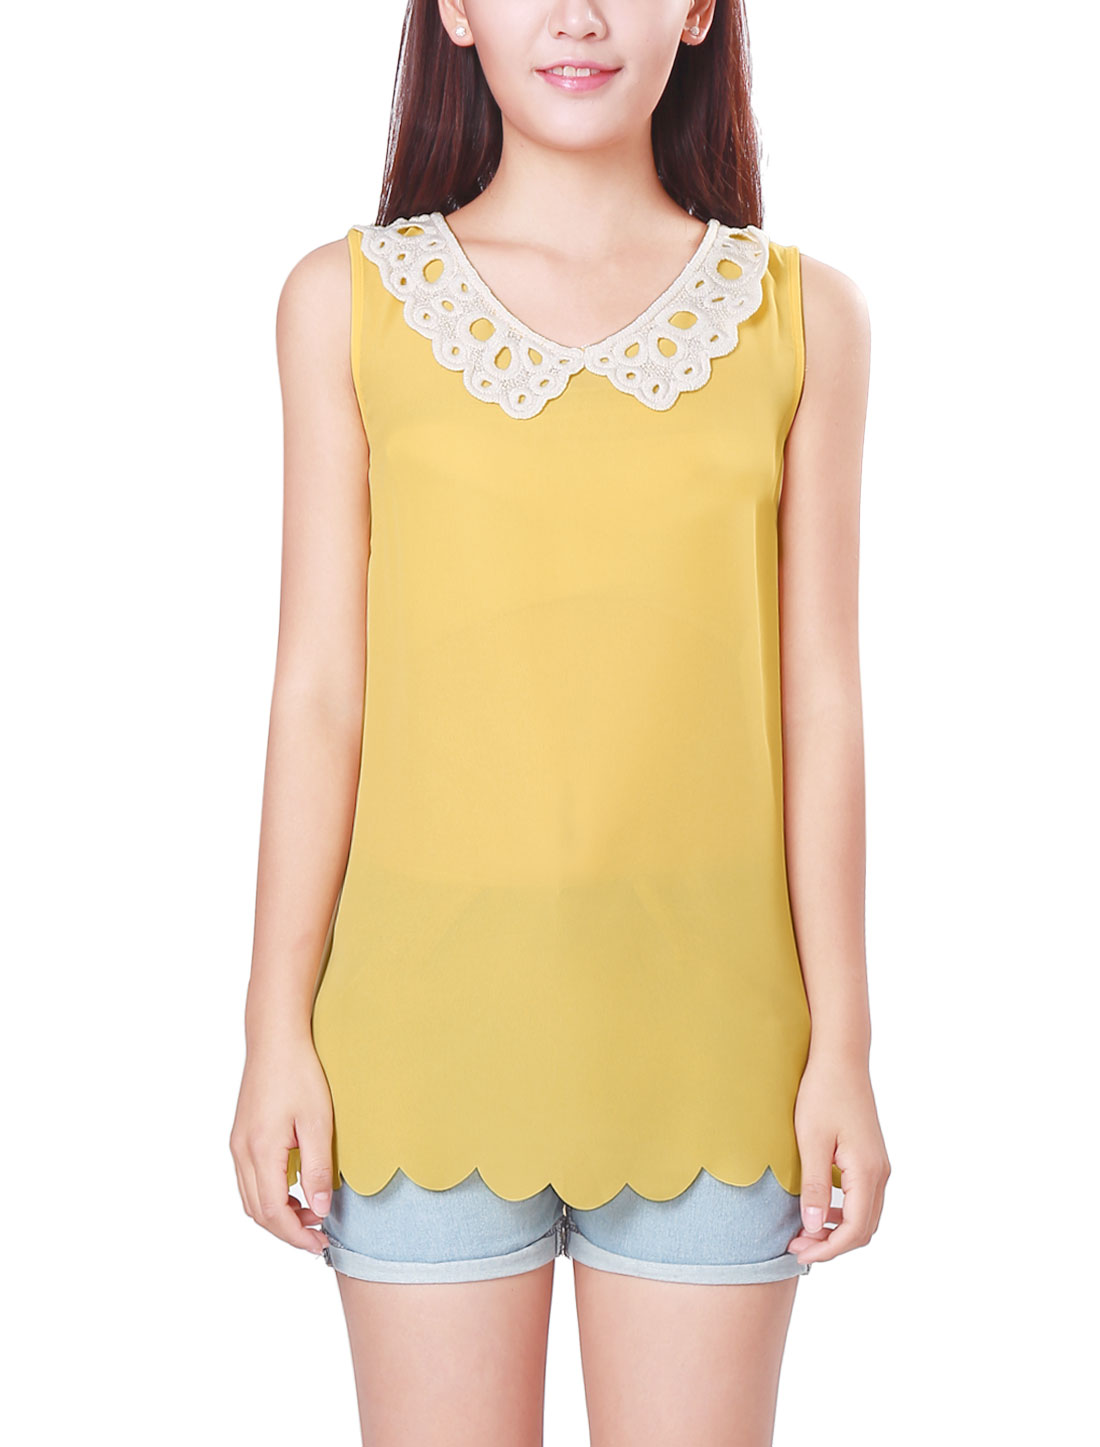 Women 2013 New Fashion Scalloped Hem Design Yellow Tank Top L